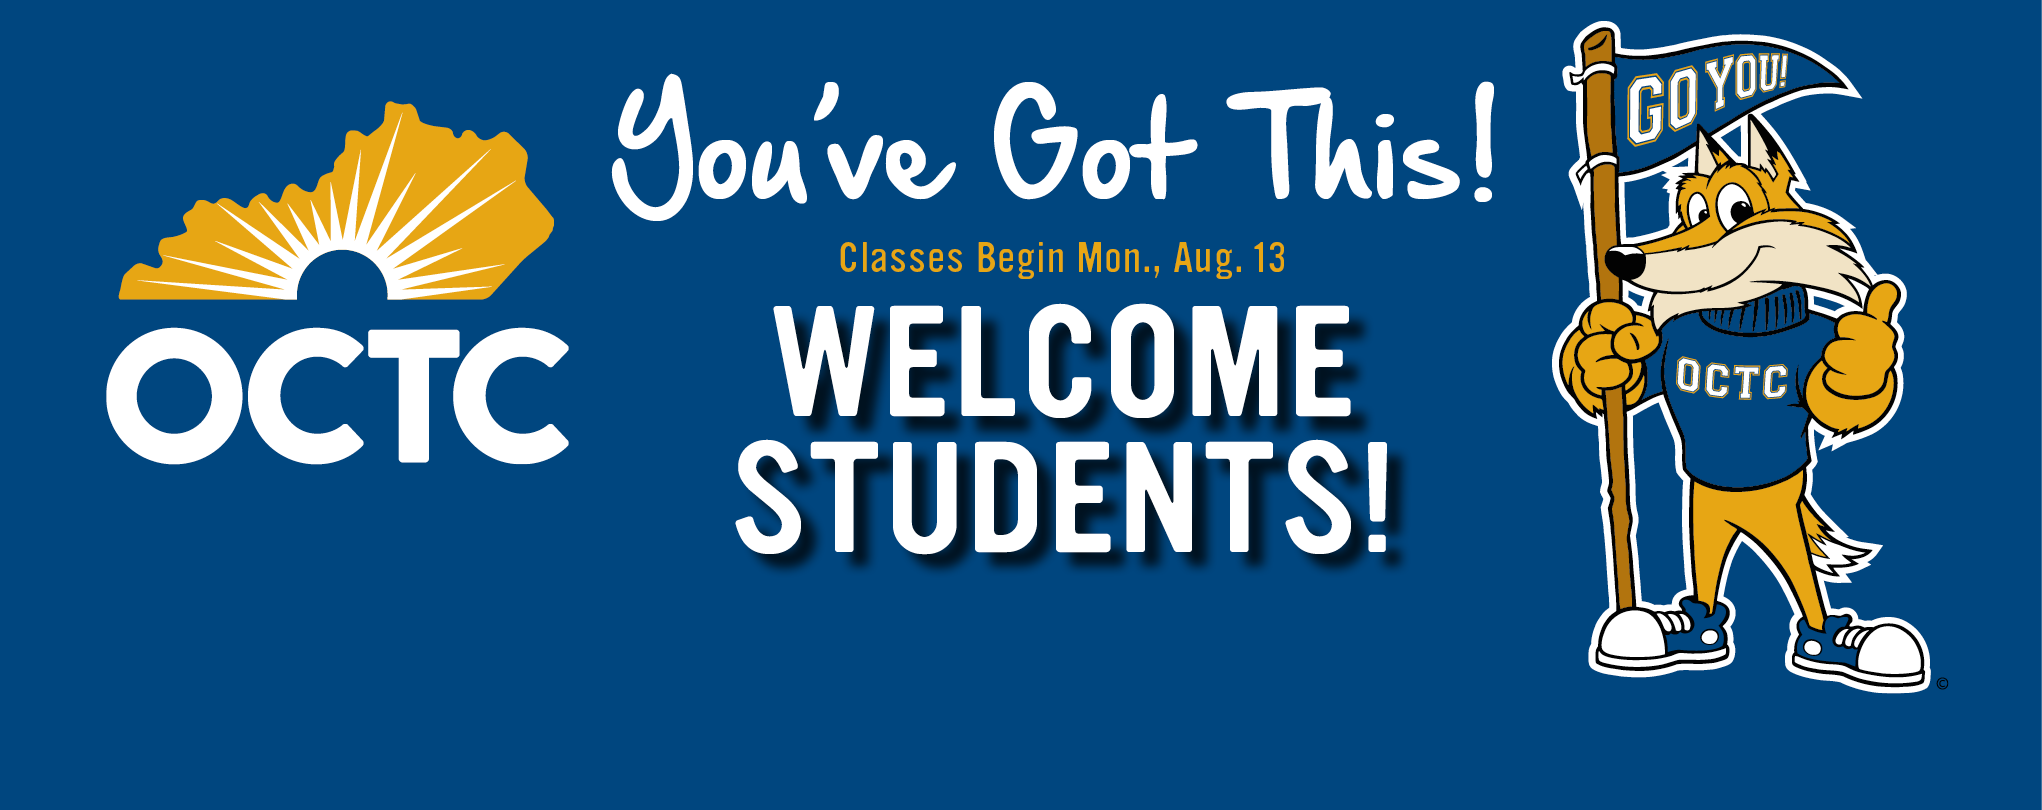 OCTC welcome students banner with OCTC Pathfinder encouraging students